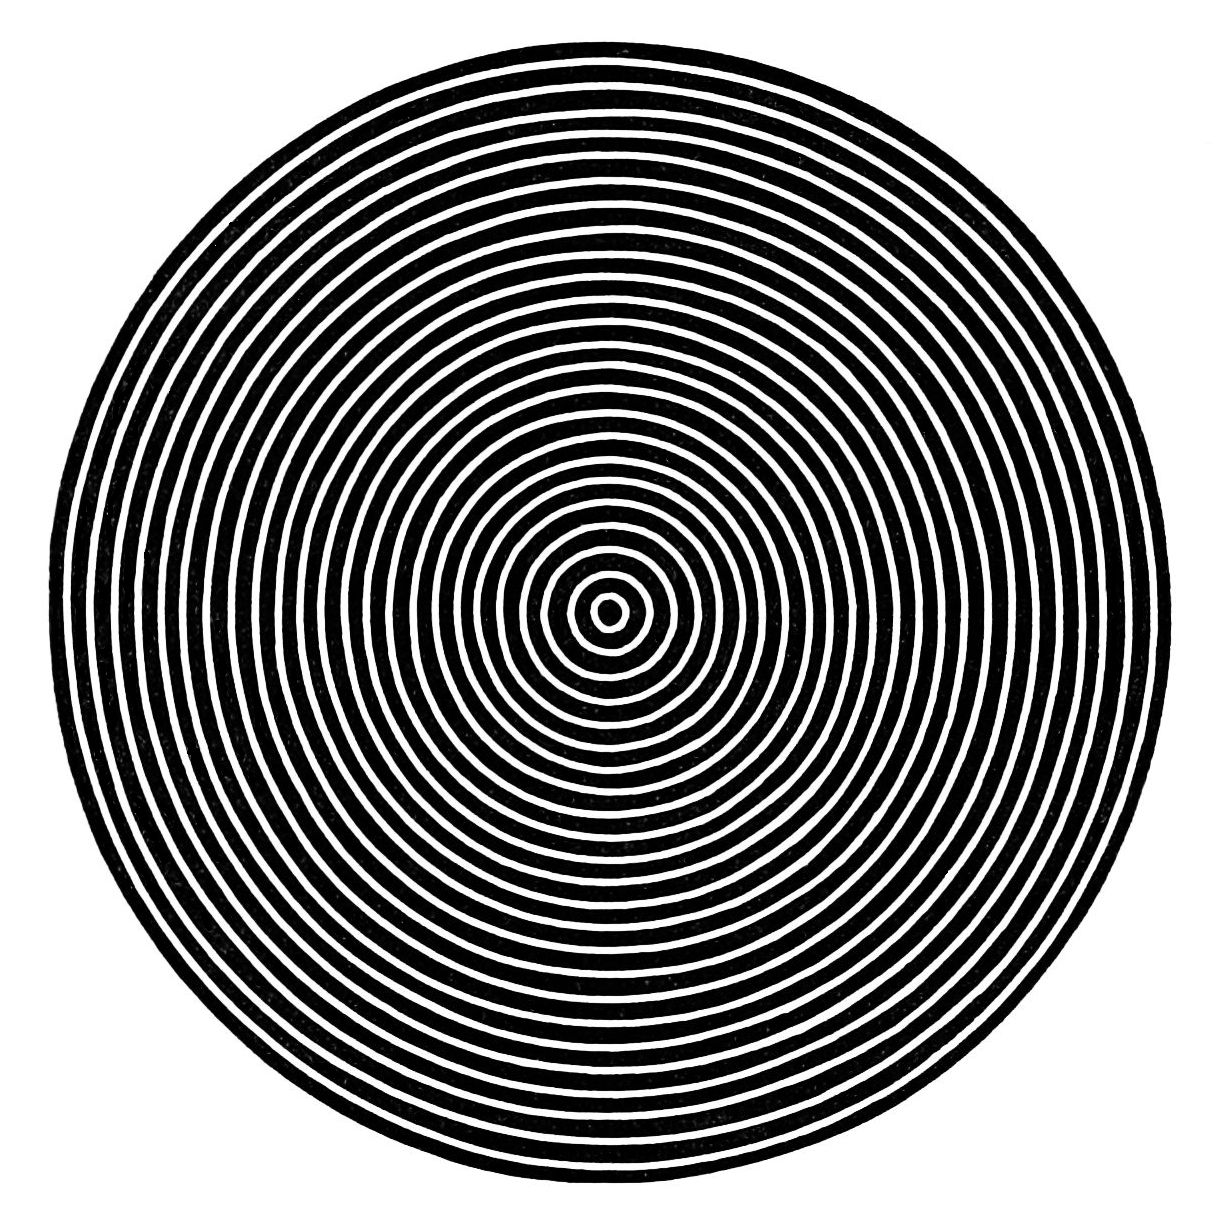 File:PSM_V18_D537_Concentric_circle_test_for_astigmatism on Concentric Circles